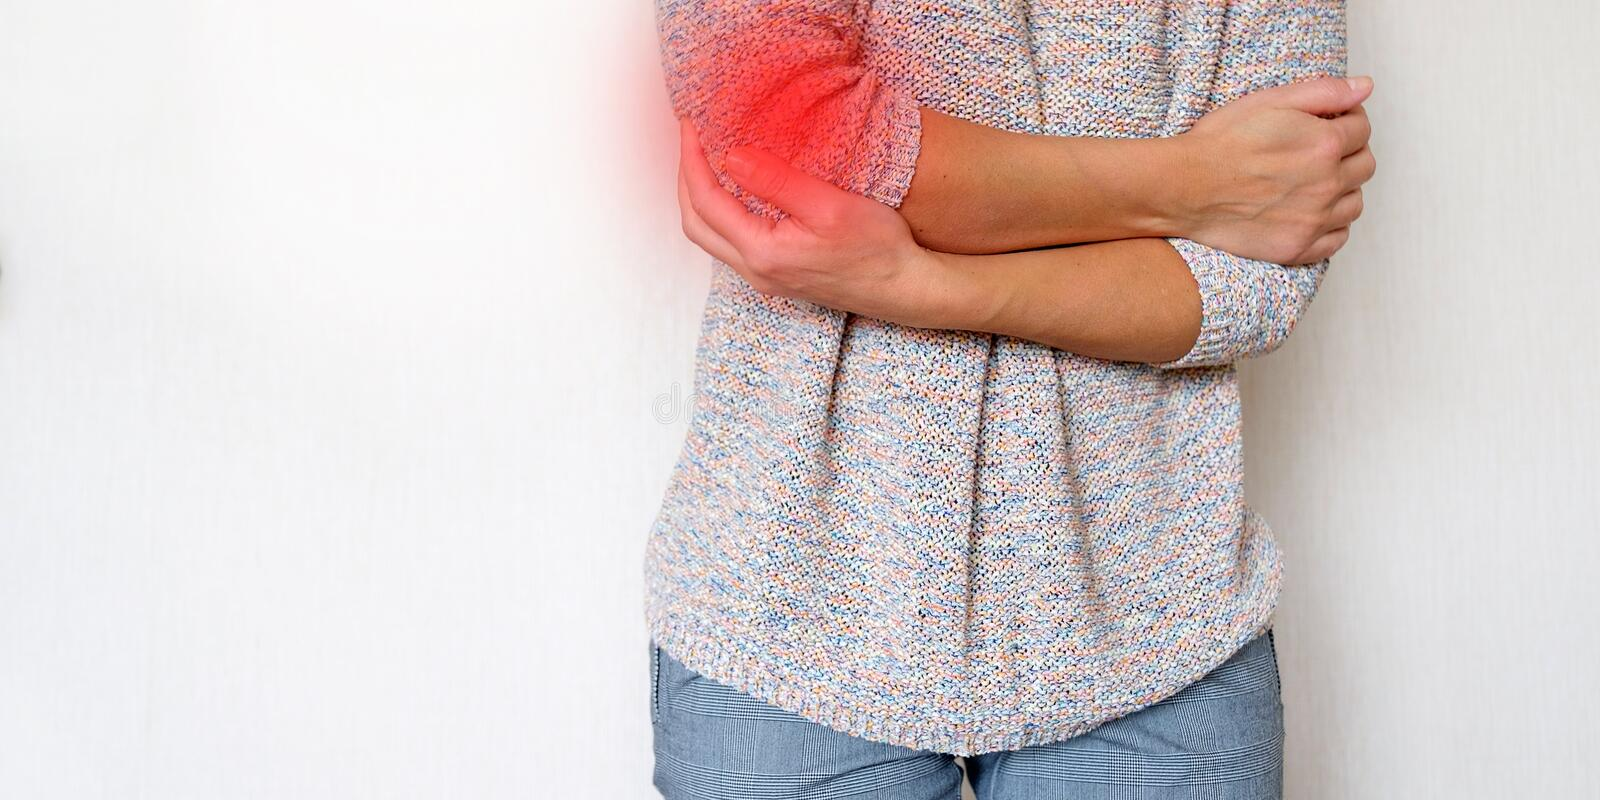 Pain area red background. The girl grabbed his hand in pain. Suffers from diseases of the joints royalty free stock images